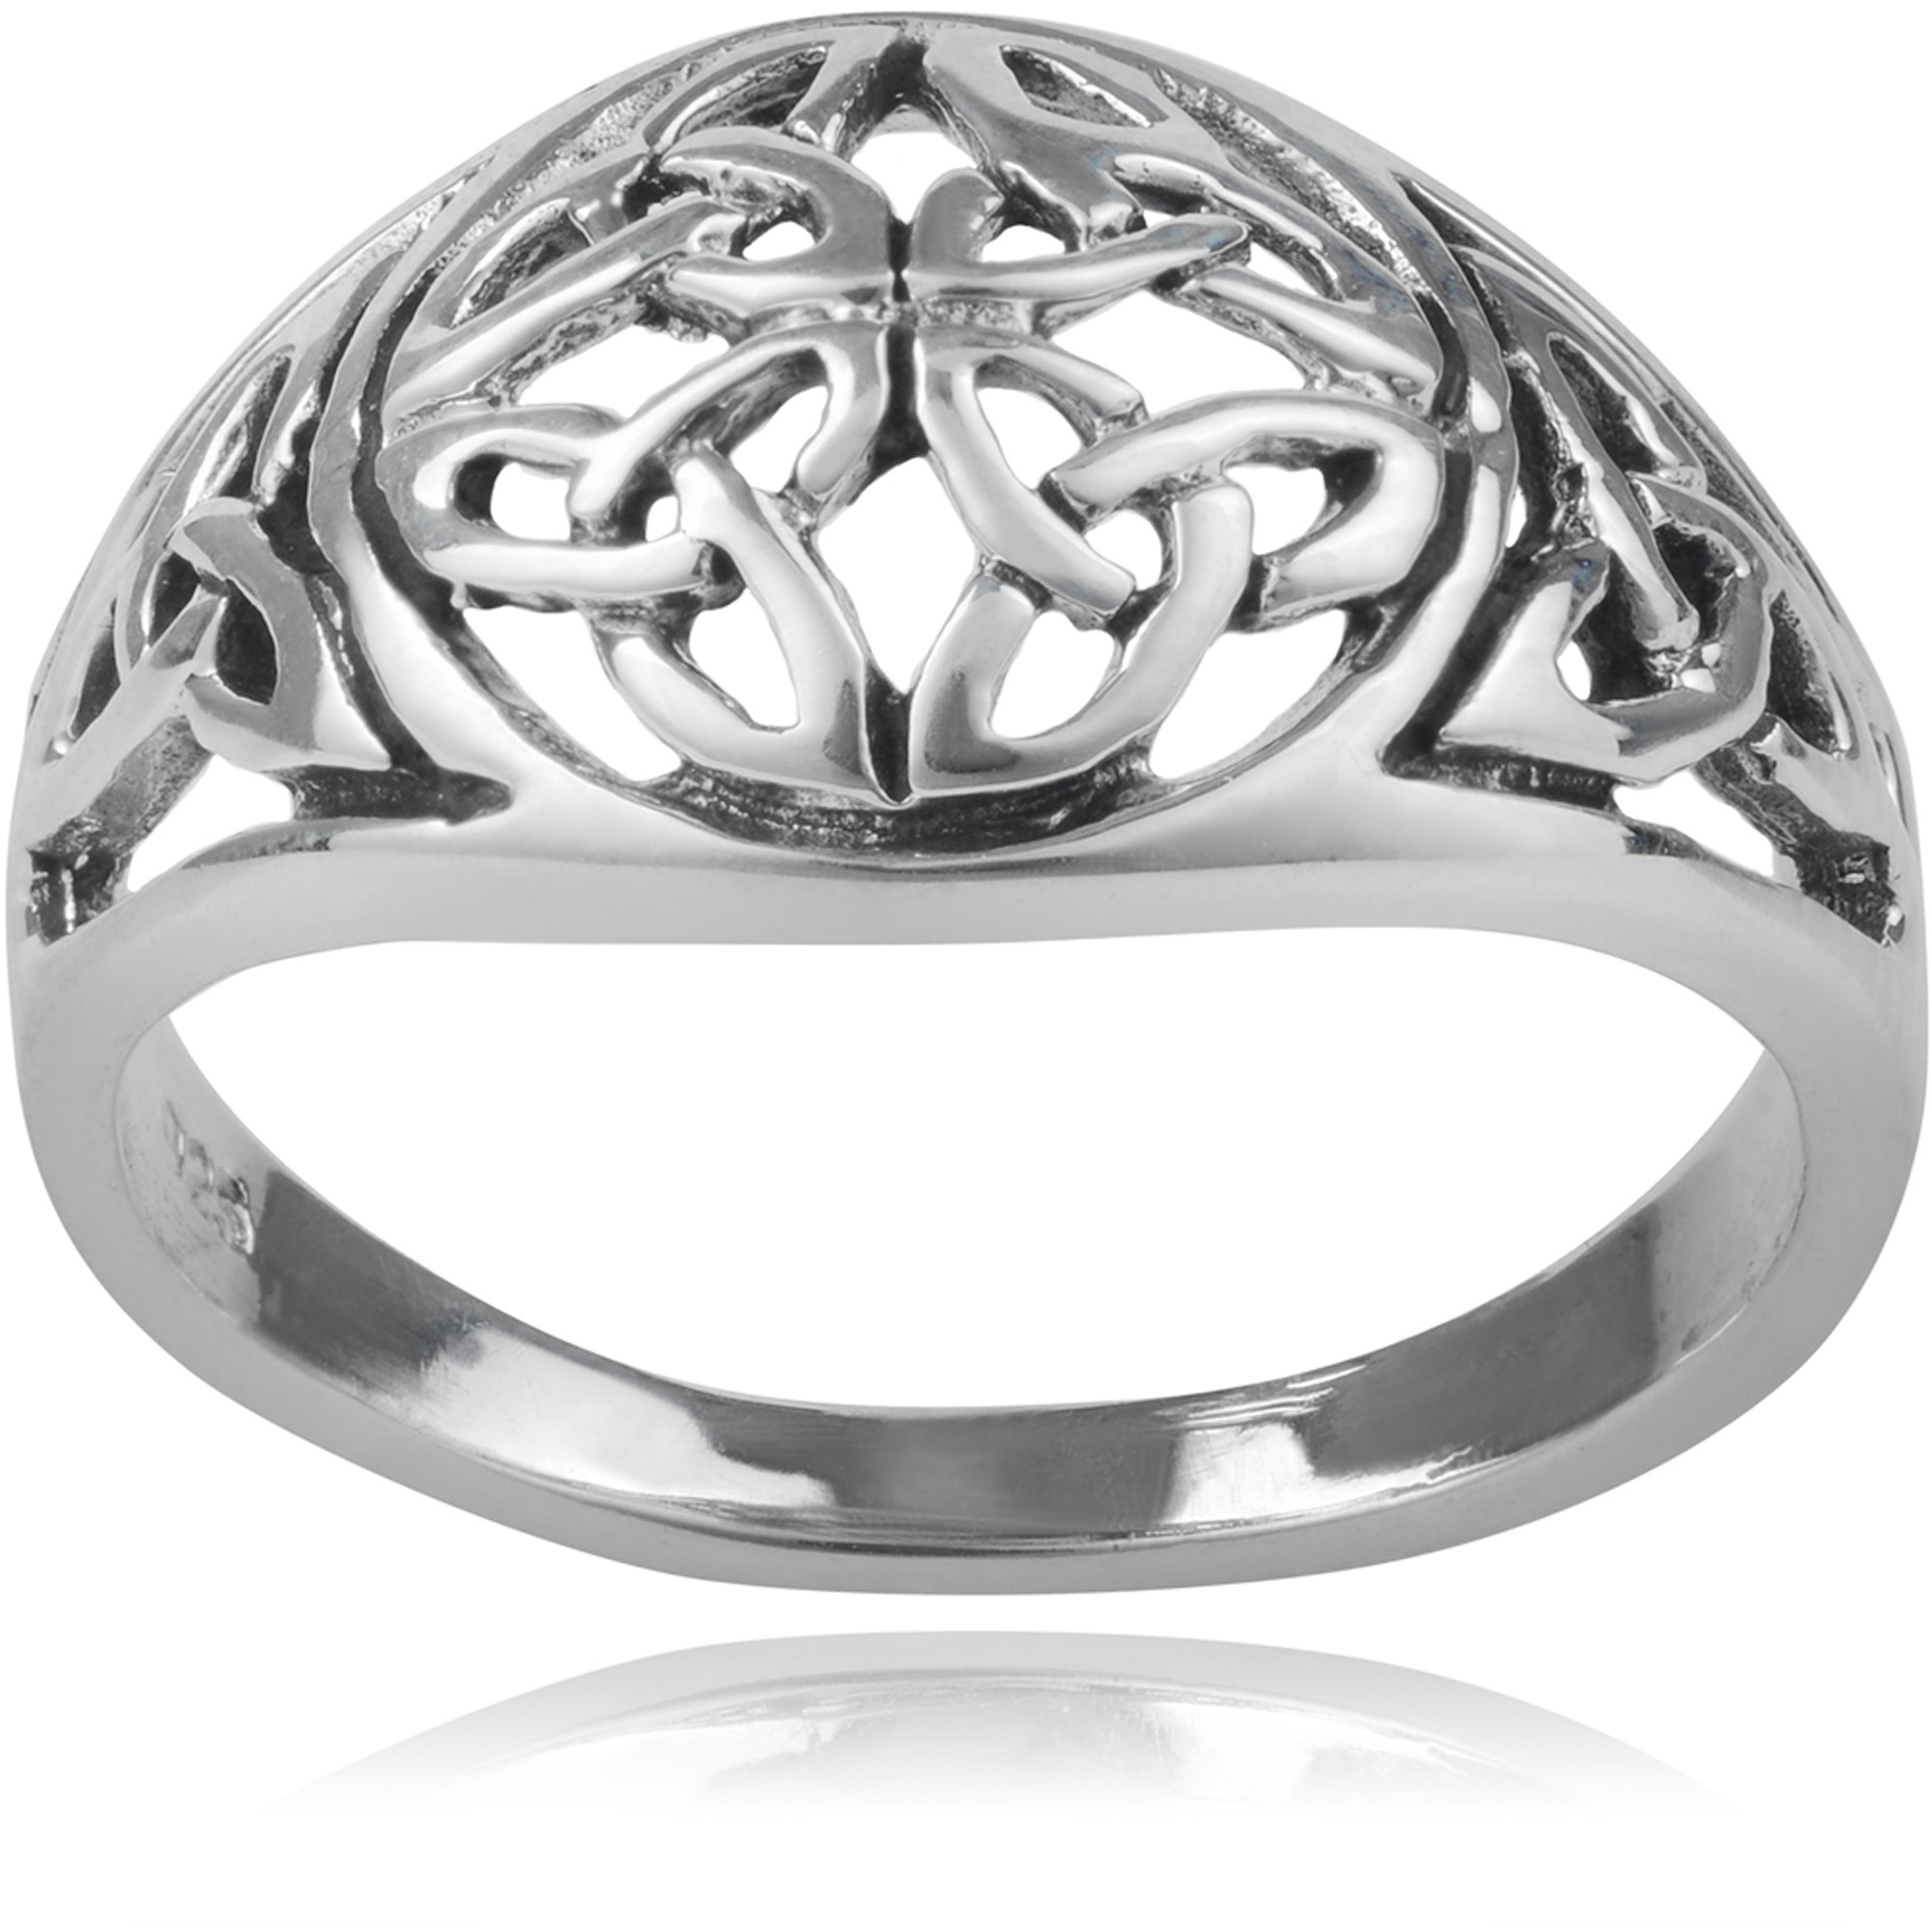 Brinley Co. Women's Sterling Silver Celtic Knot Fashion Ring